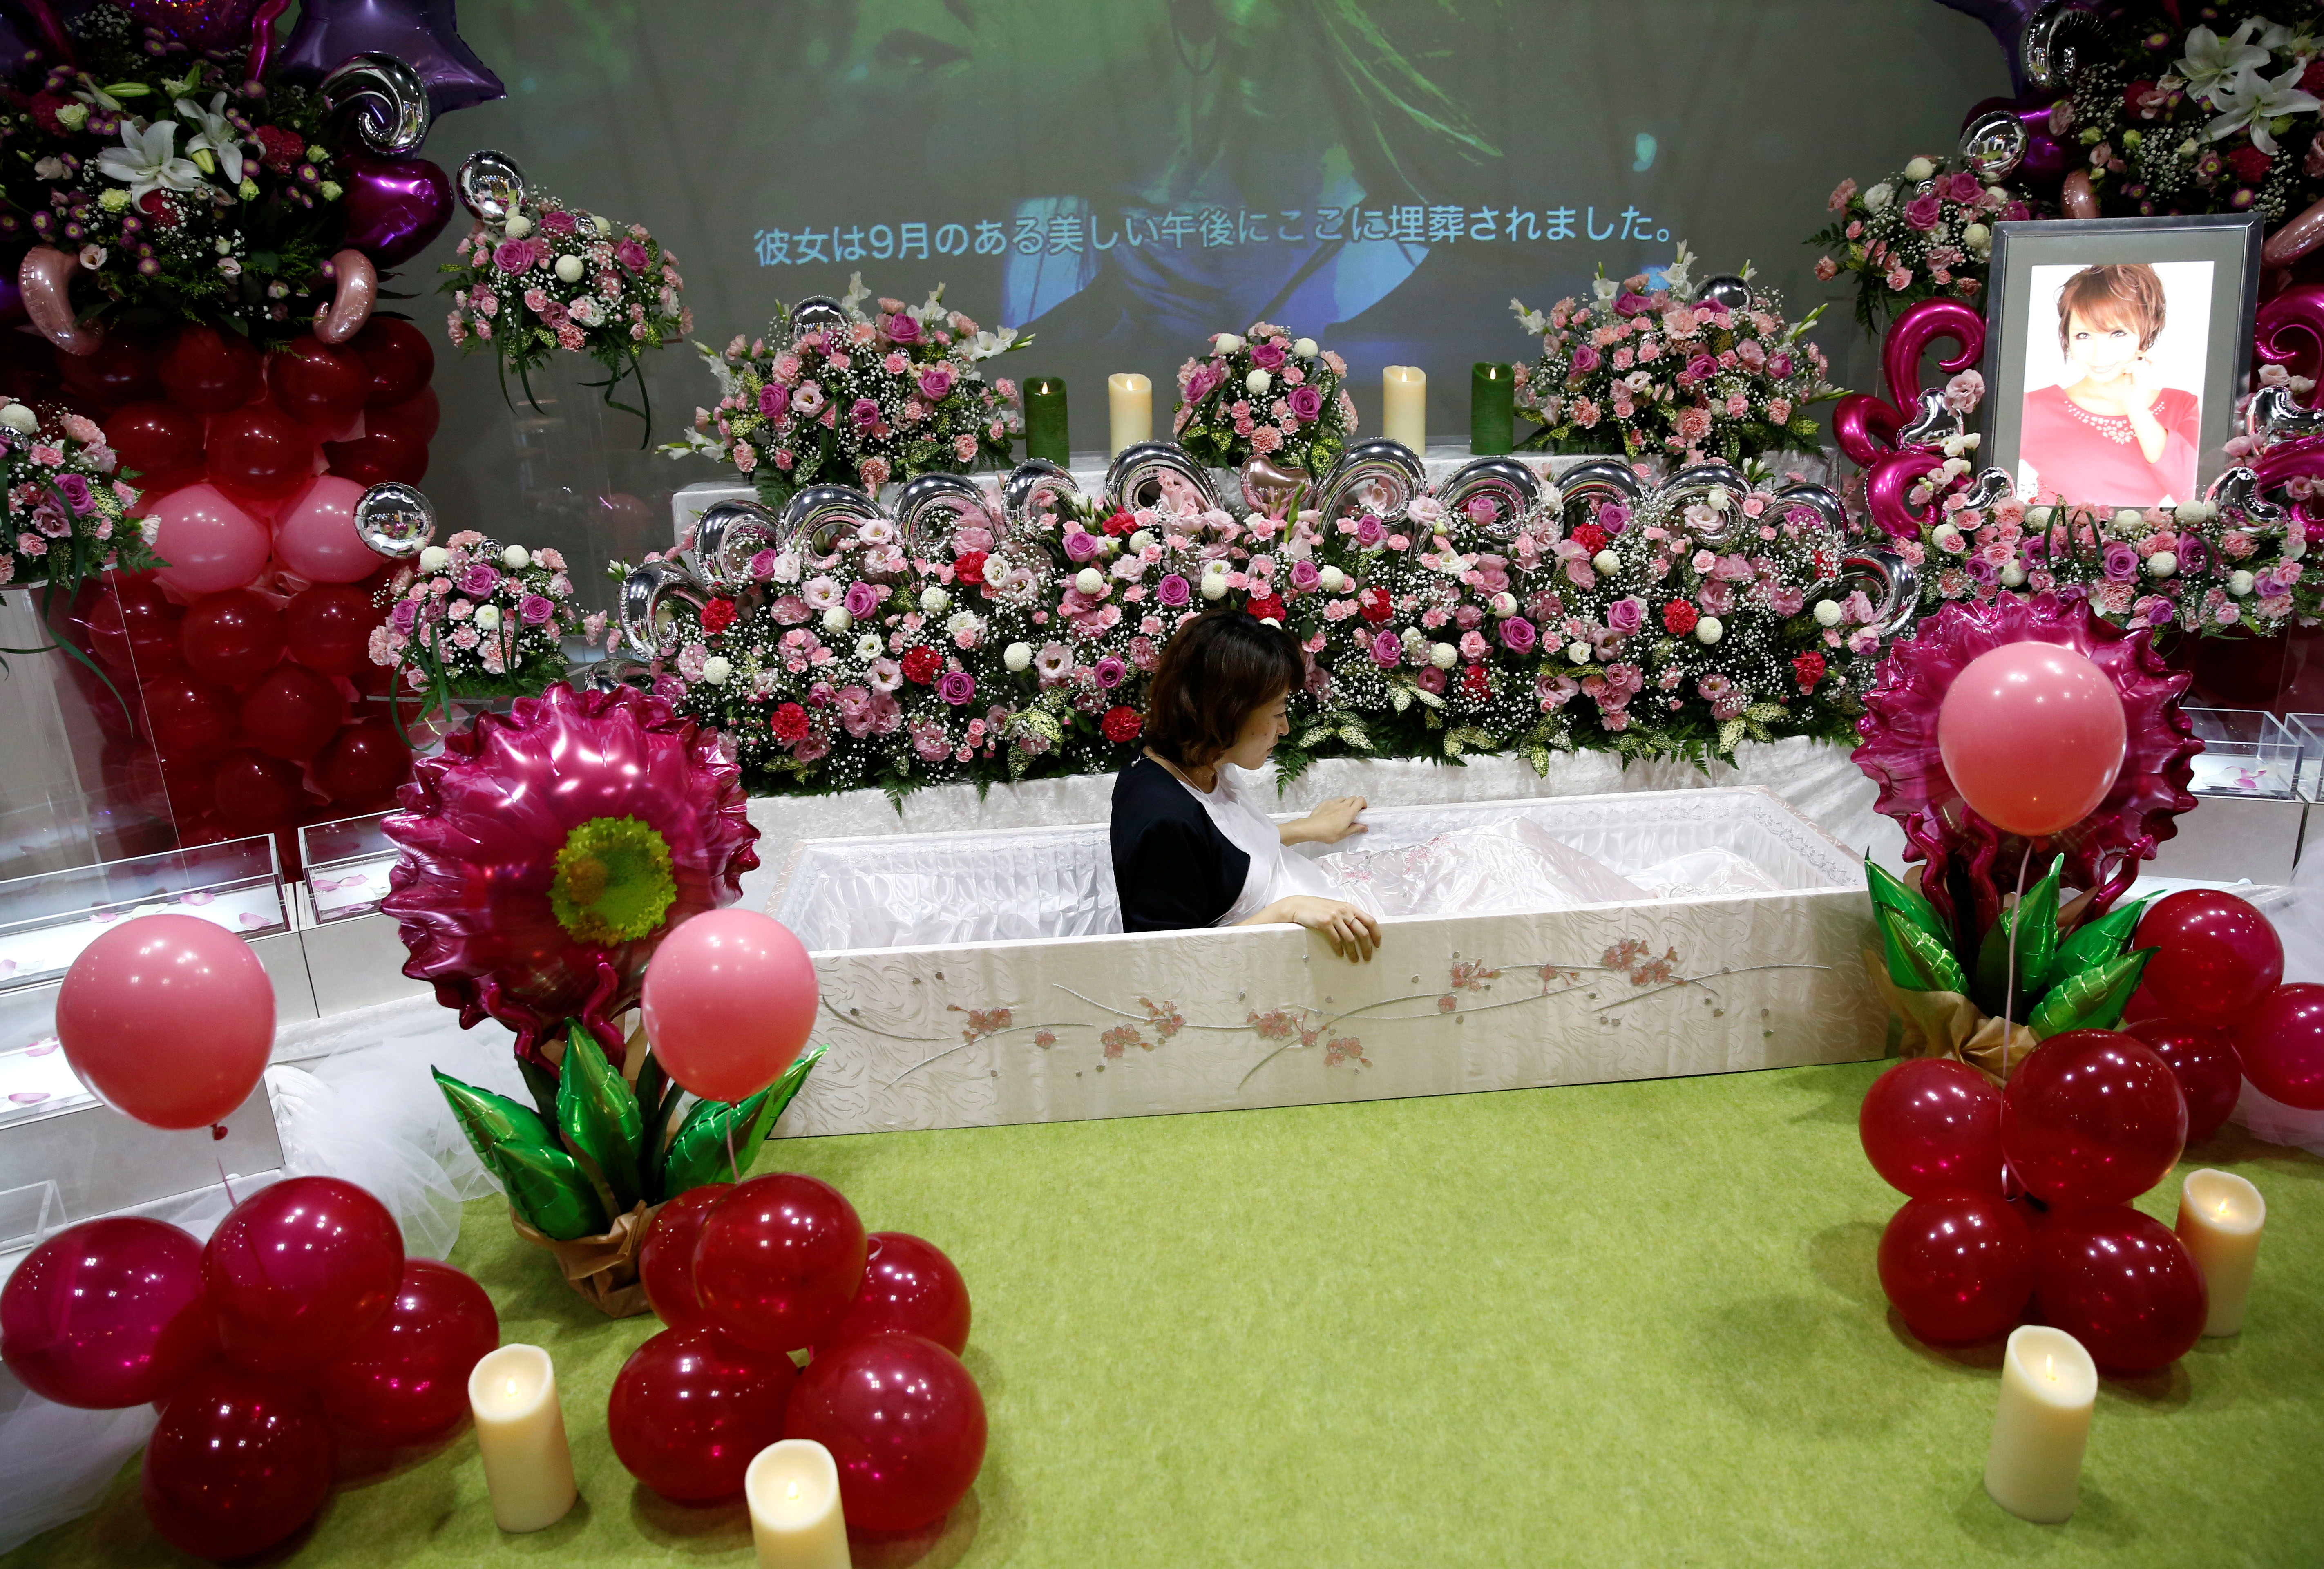 Funeral Homes And The Death Industry Are Undergoing